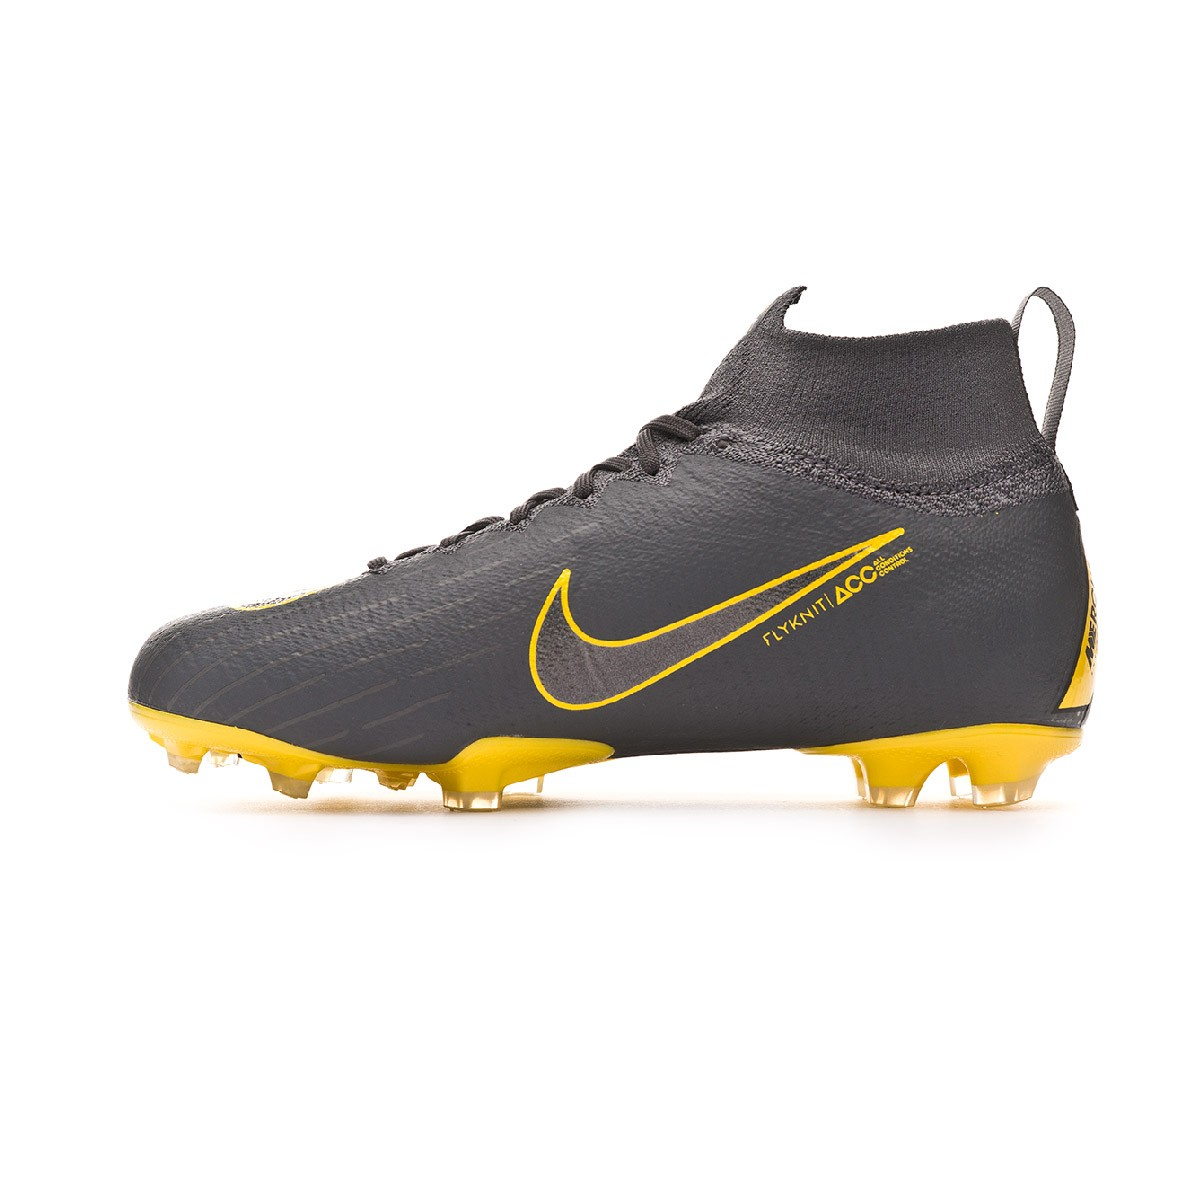 a3b492c53c Football Boots Nike Kids Mercurial Superfly VI Elite FG Dark grey-Black -  Football store Fútbol Emotion